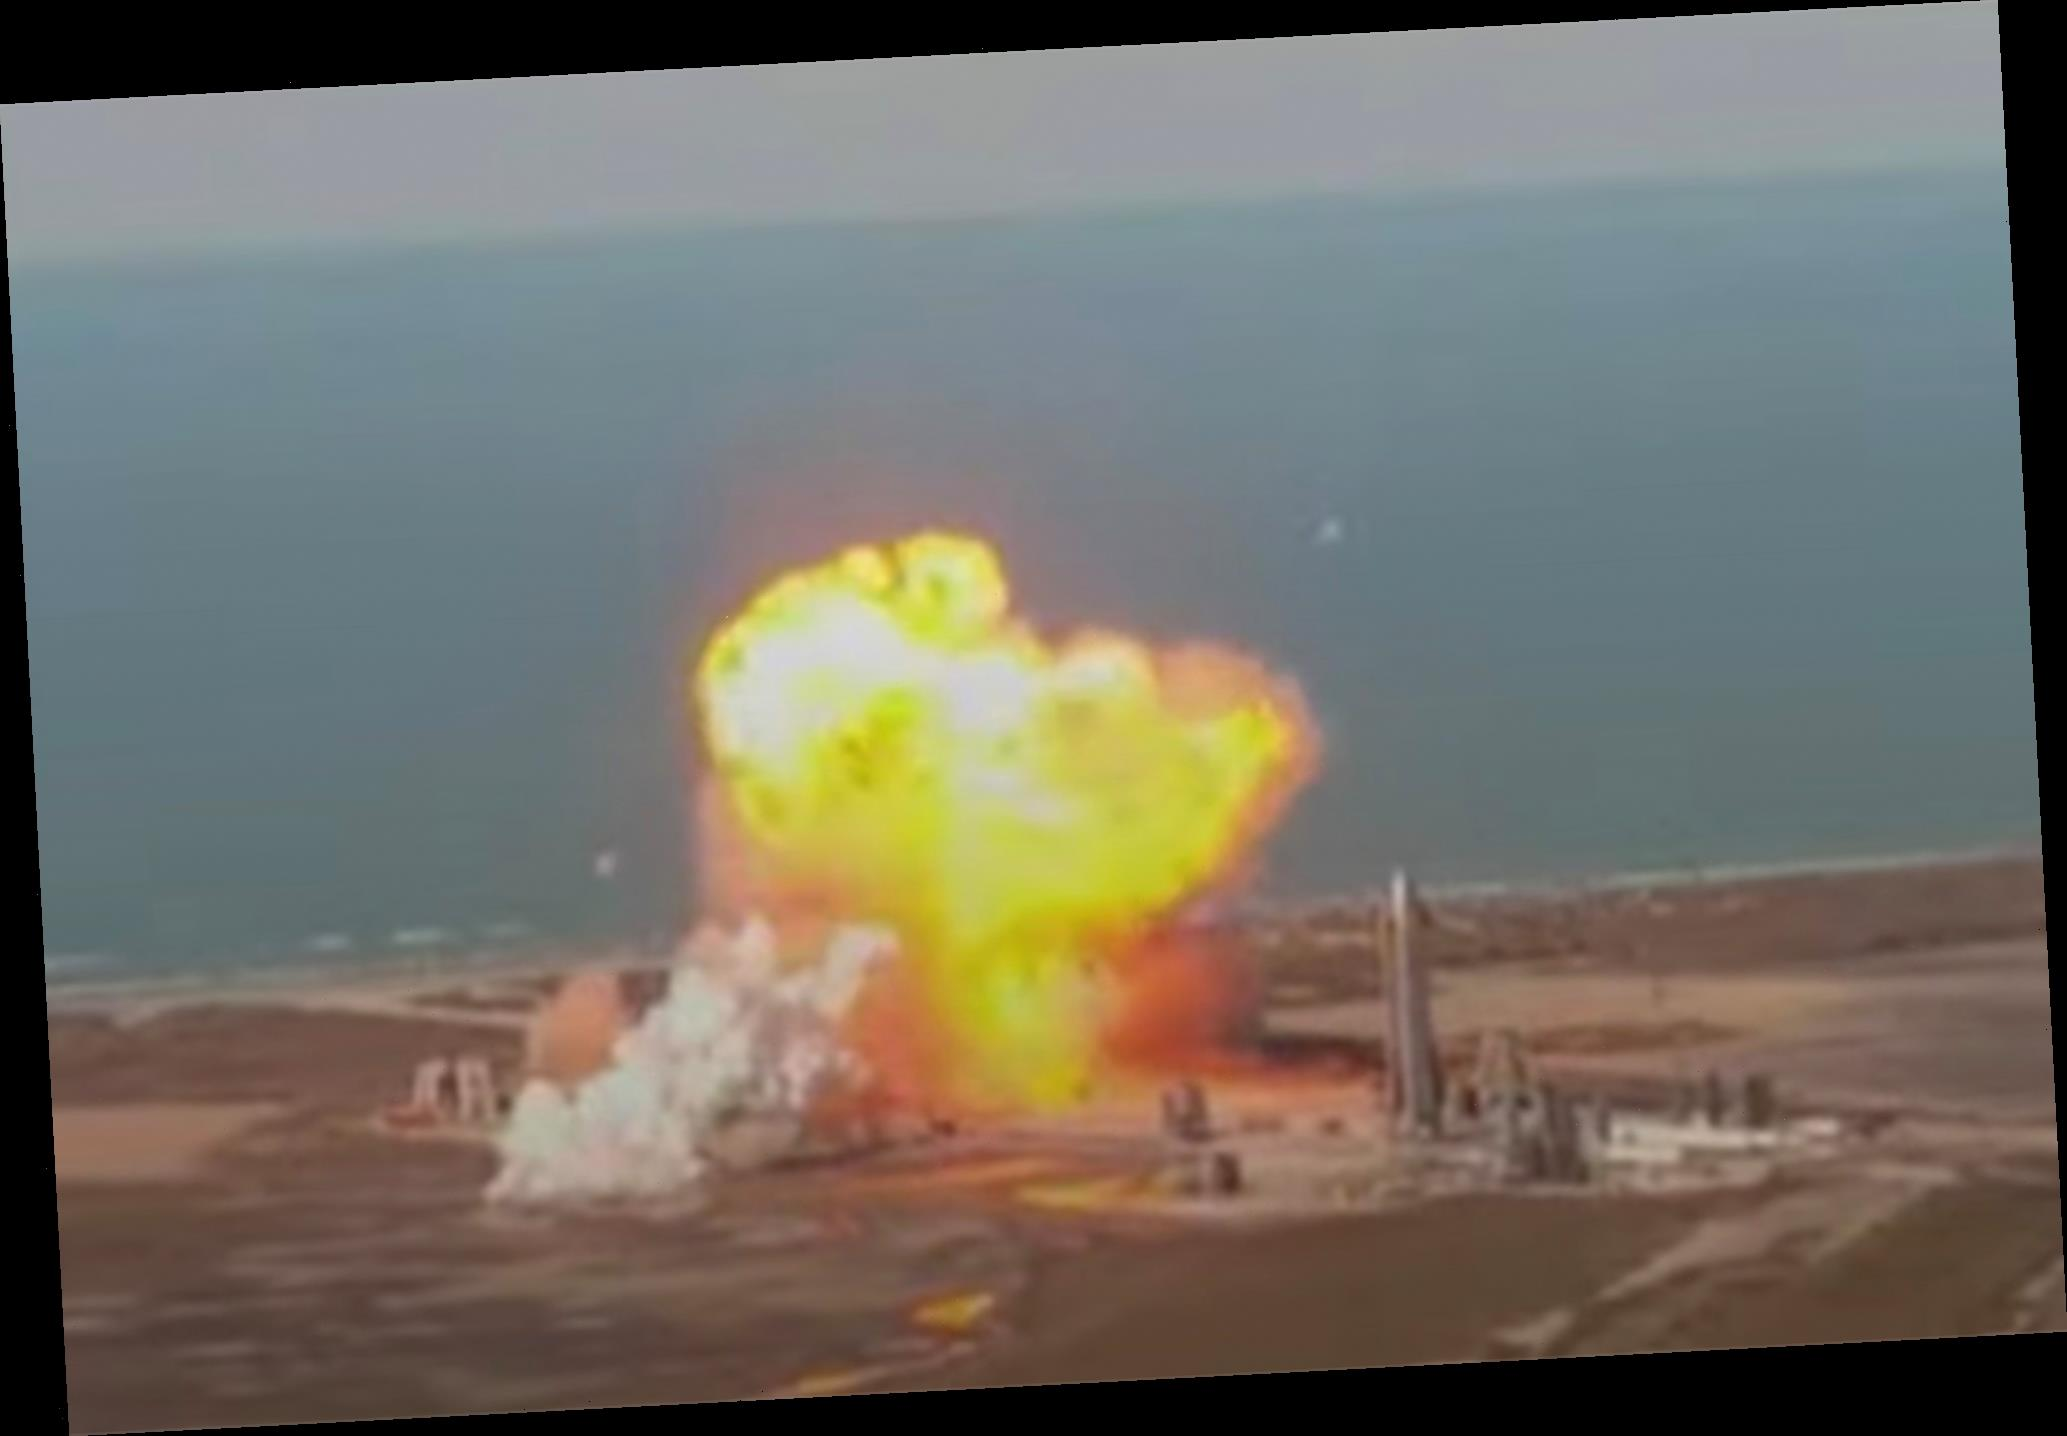 SpaceX Starship explodes in test flight crash landing